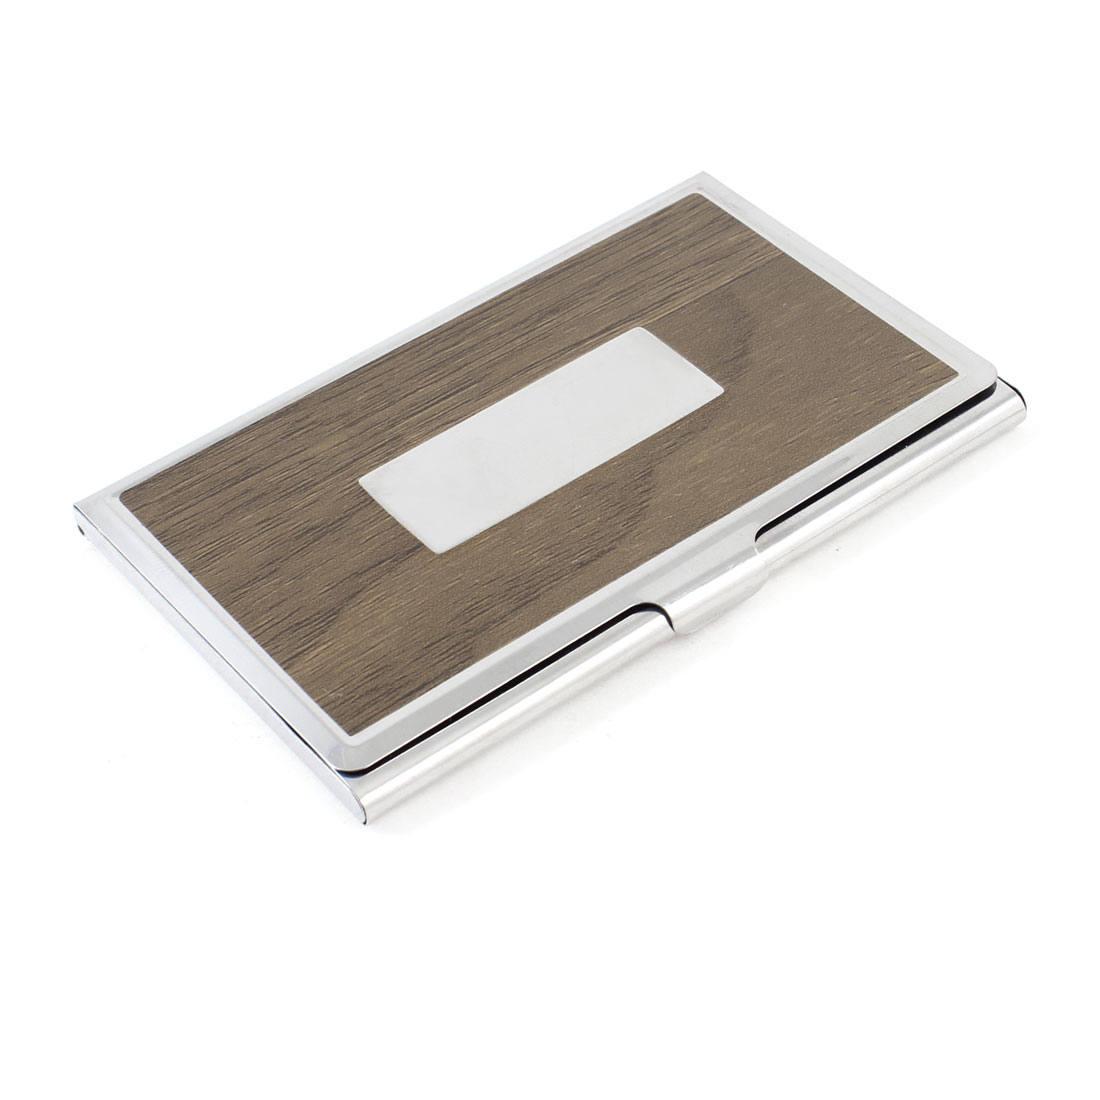 Rectangle Metal Business Card Holders Organizer Wood Color